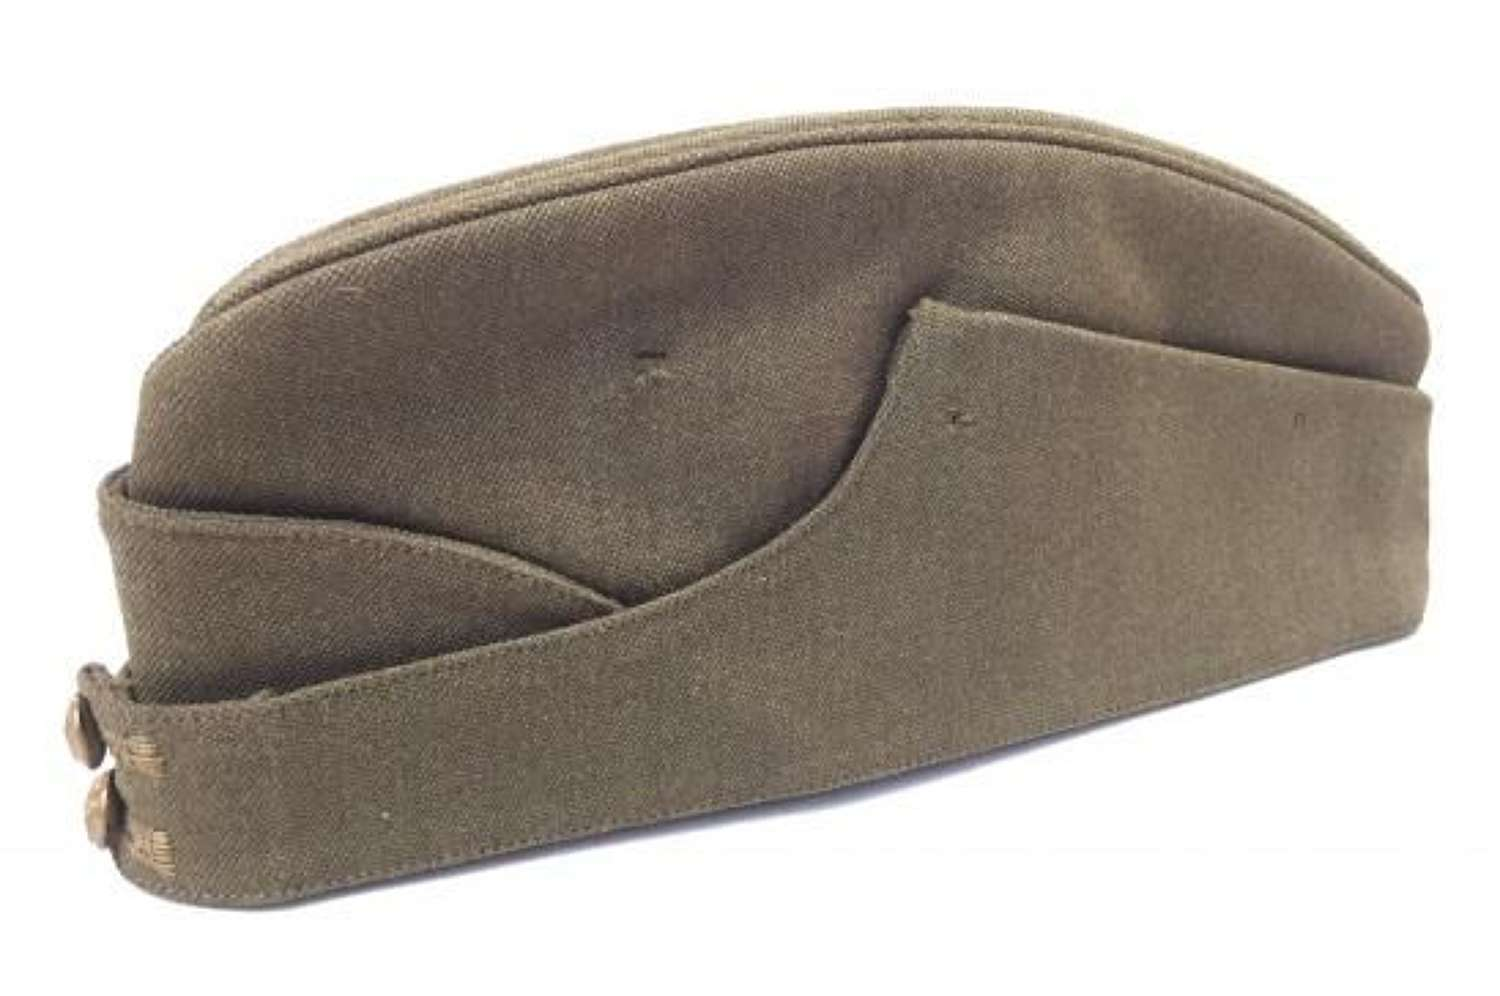 Original WW2 Period British Army Officers Cap By 'Tres & Co'